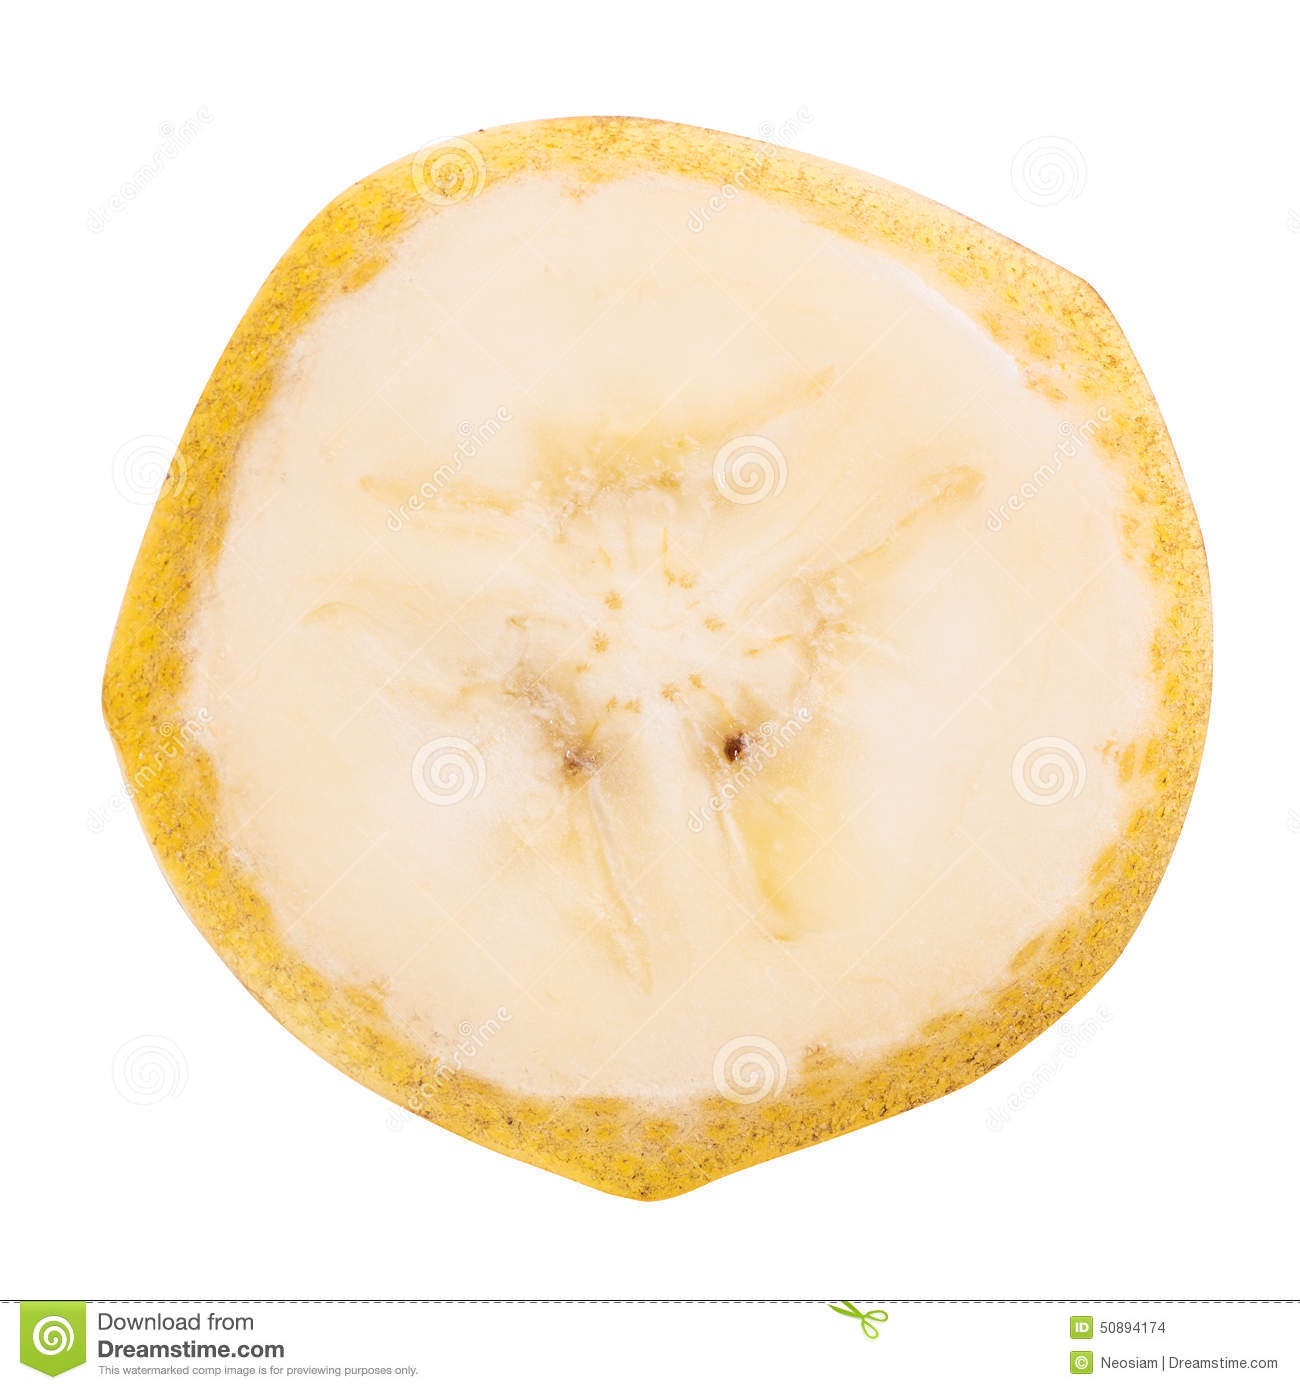 Banana Cut Slice Stock Photo - Image: 50894174